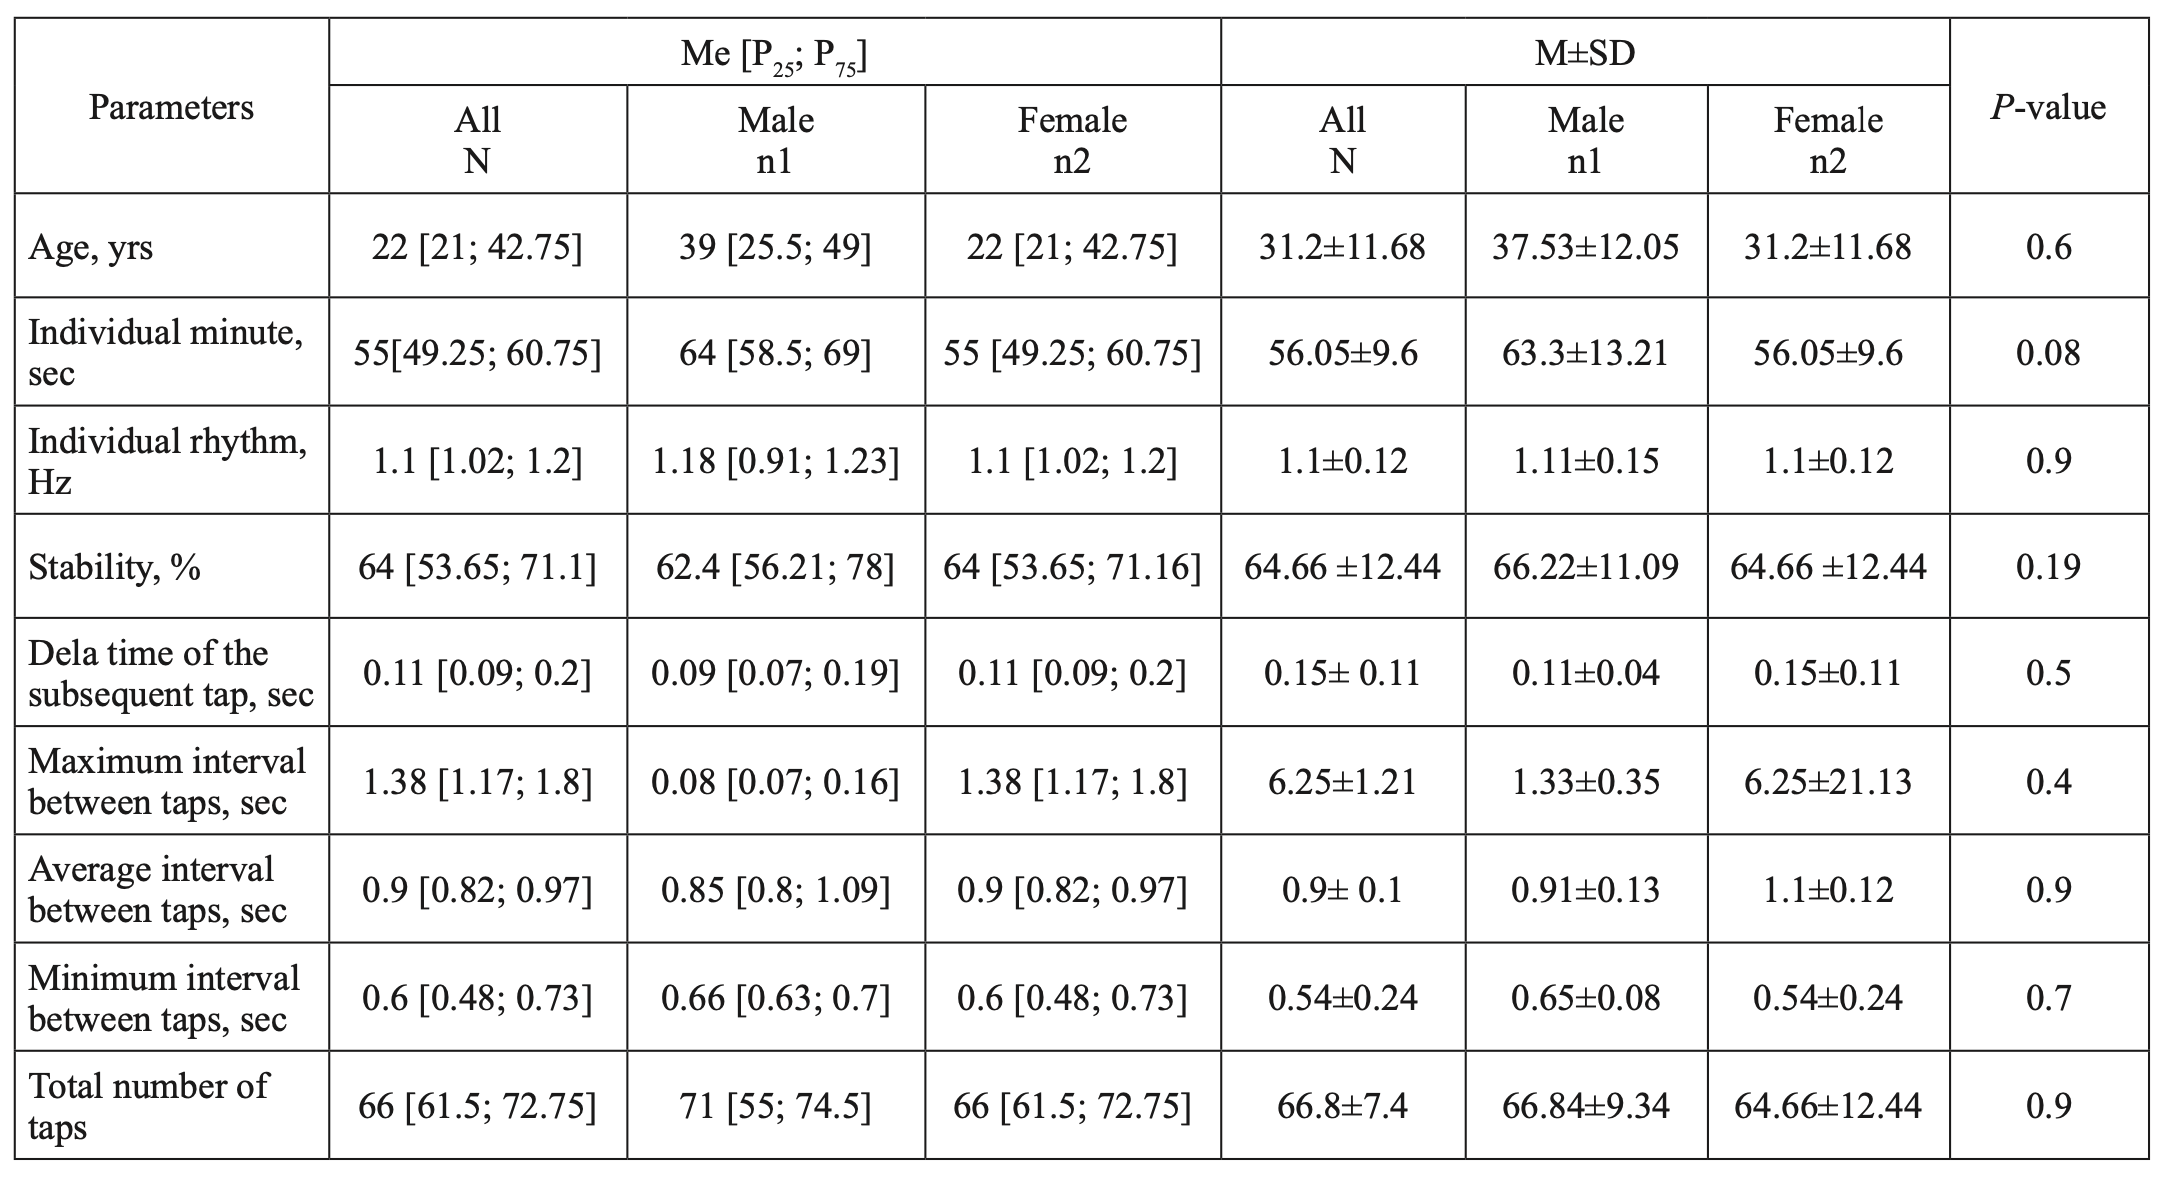 Table 1. Tapping parameters in healthy adults